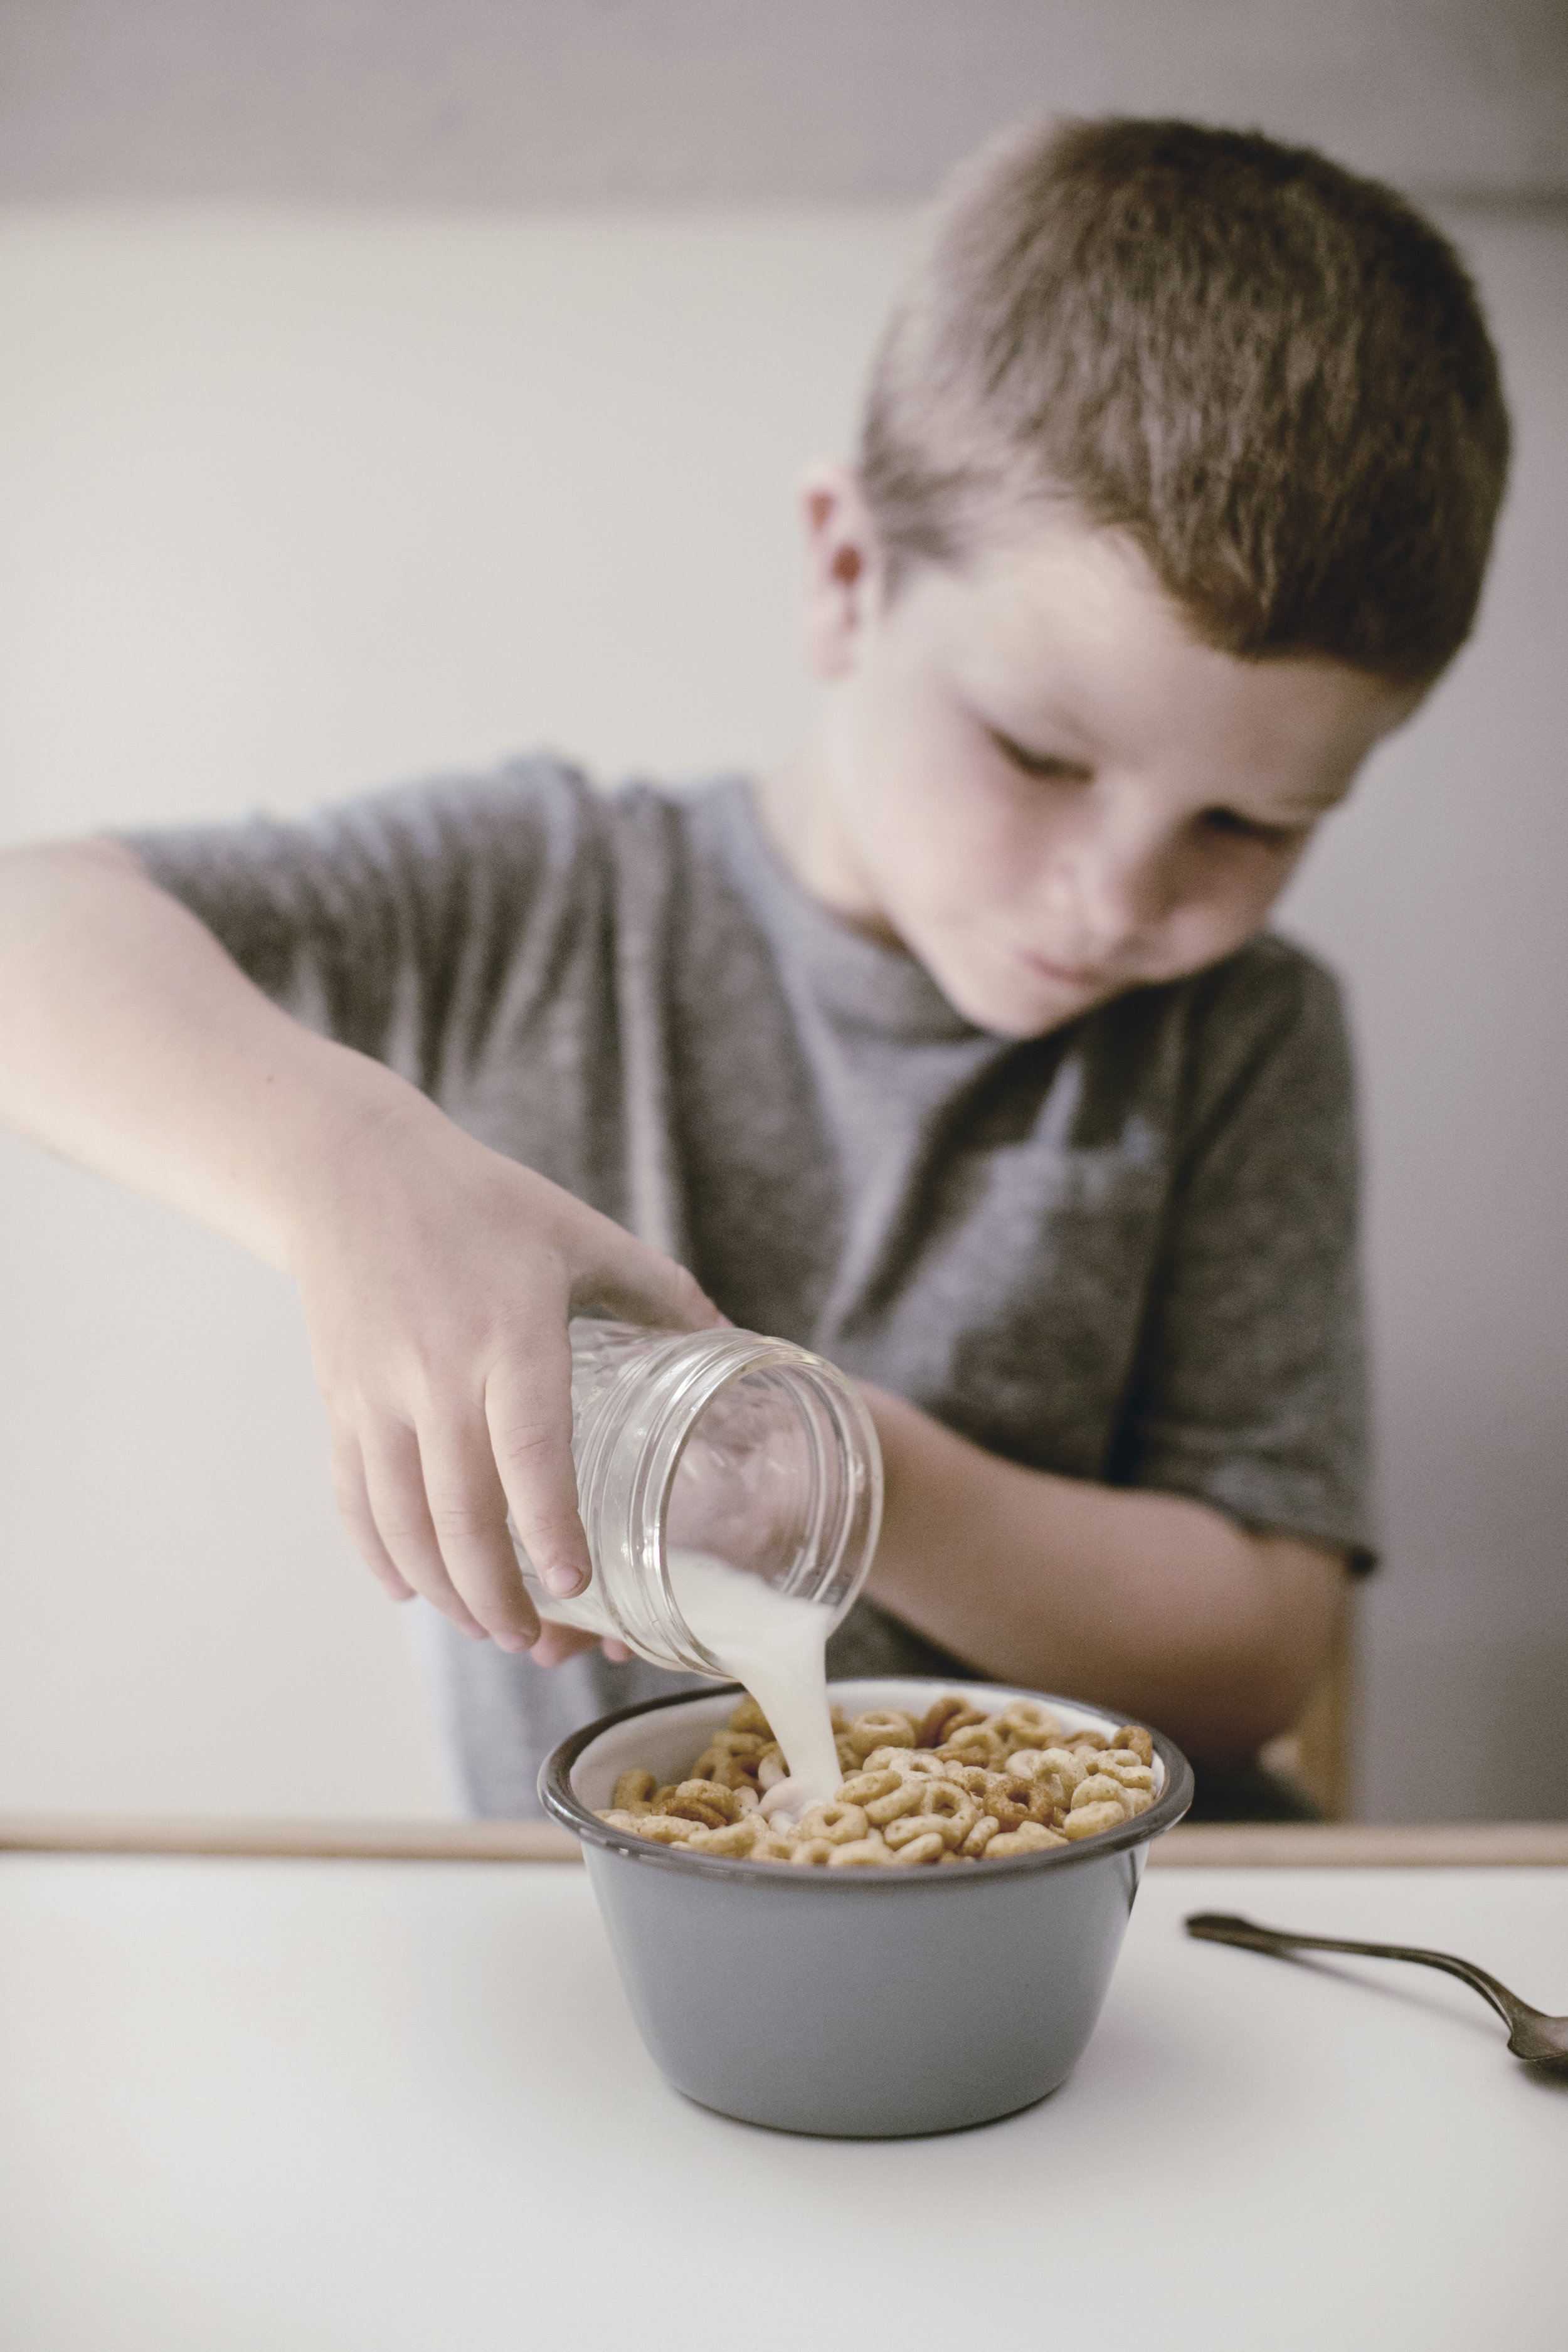 child pouring milk for cereal bowl of Cheerios / heirloomed